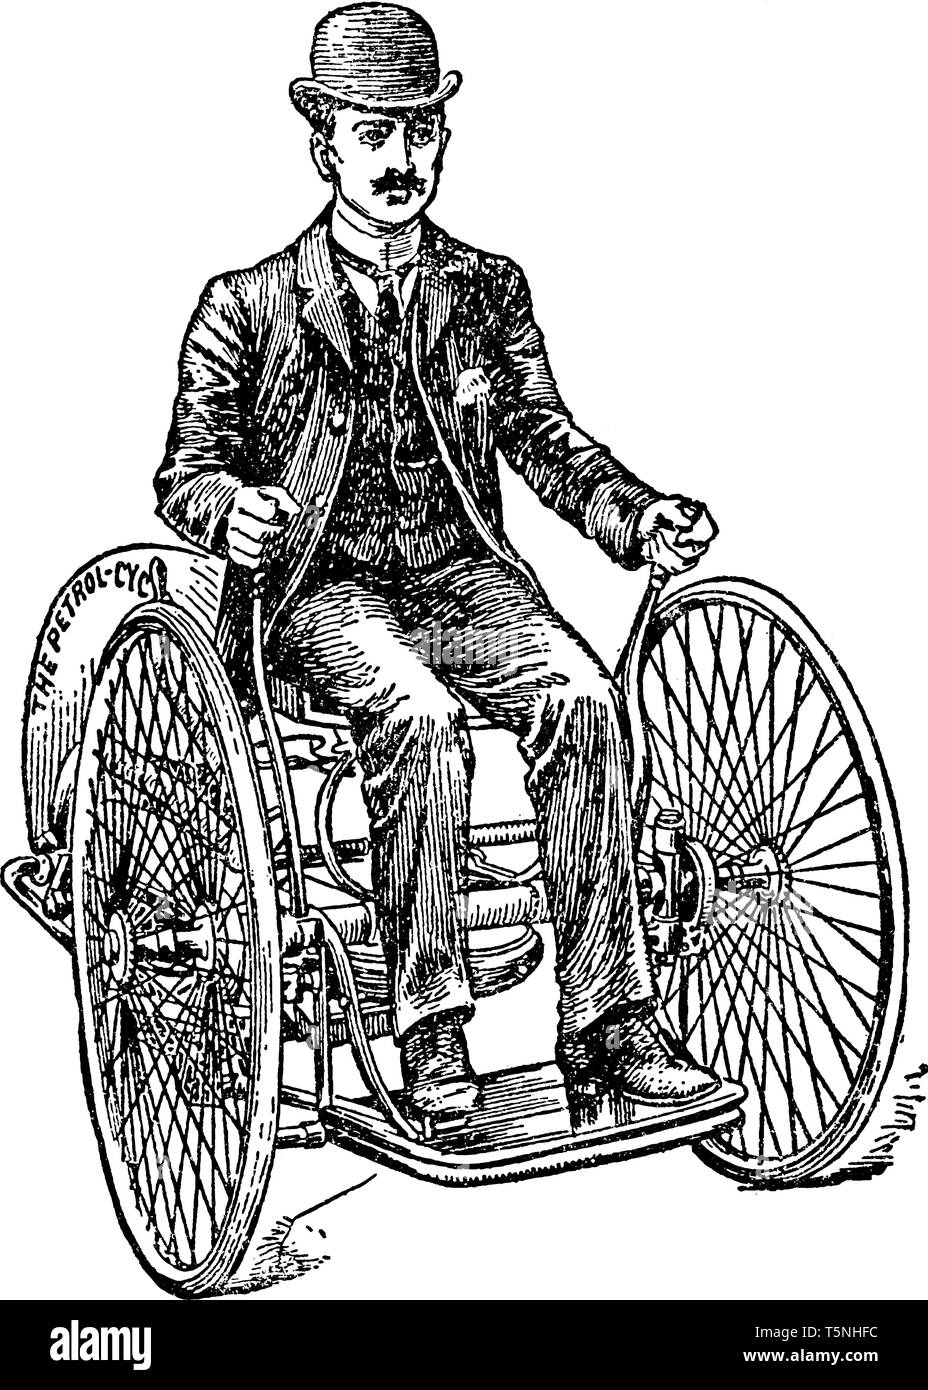 Butler Gas Operated Motor Tricycle Was Not Fitted With A Braking System And Operated At 3 To 10 Mph Vintage Line Drawing Or Engraving Illustration Stock Vector Image Art Alamy